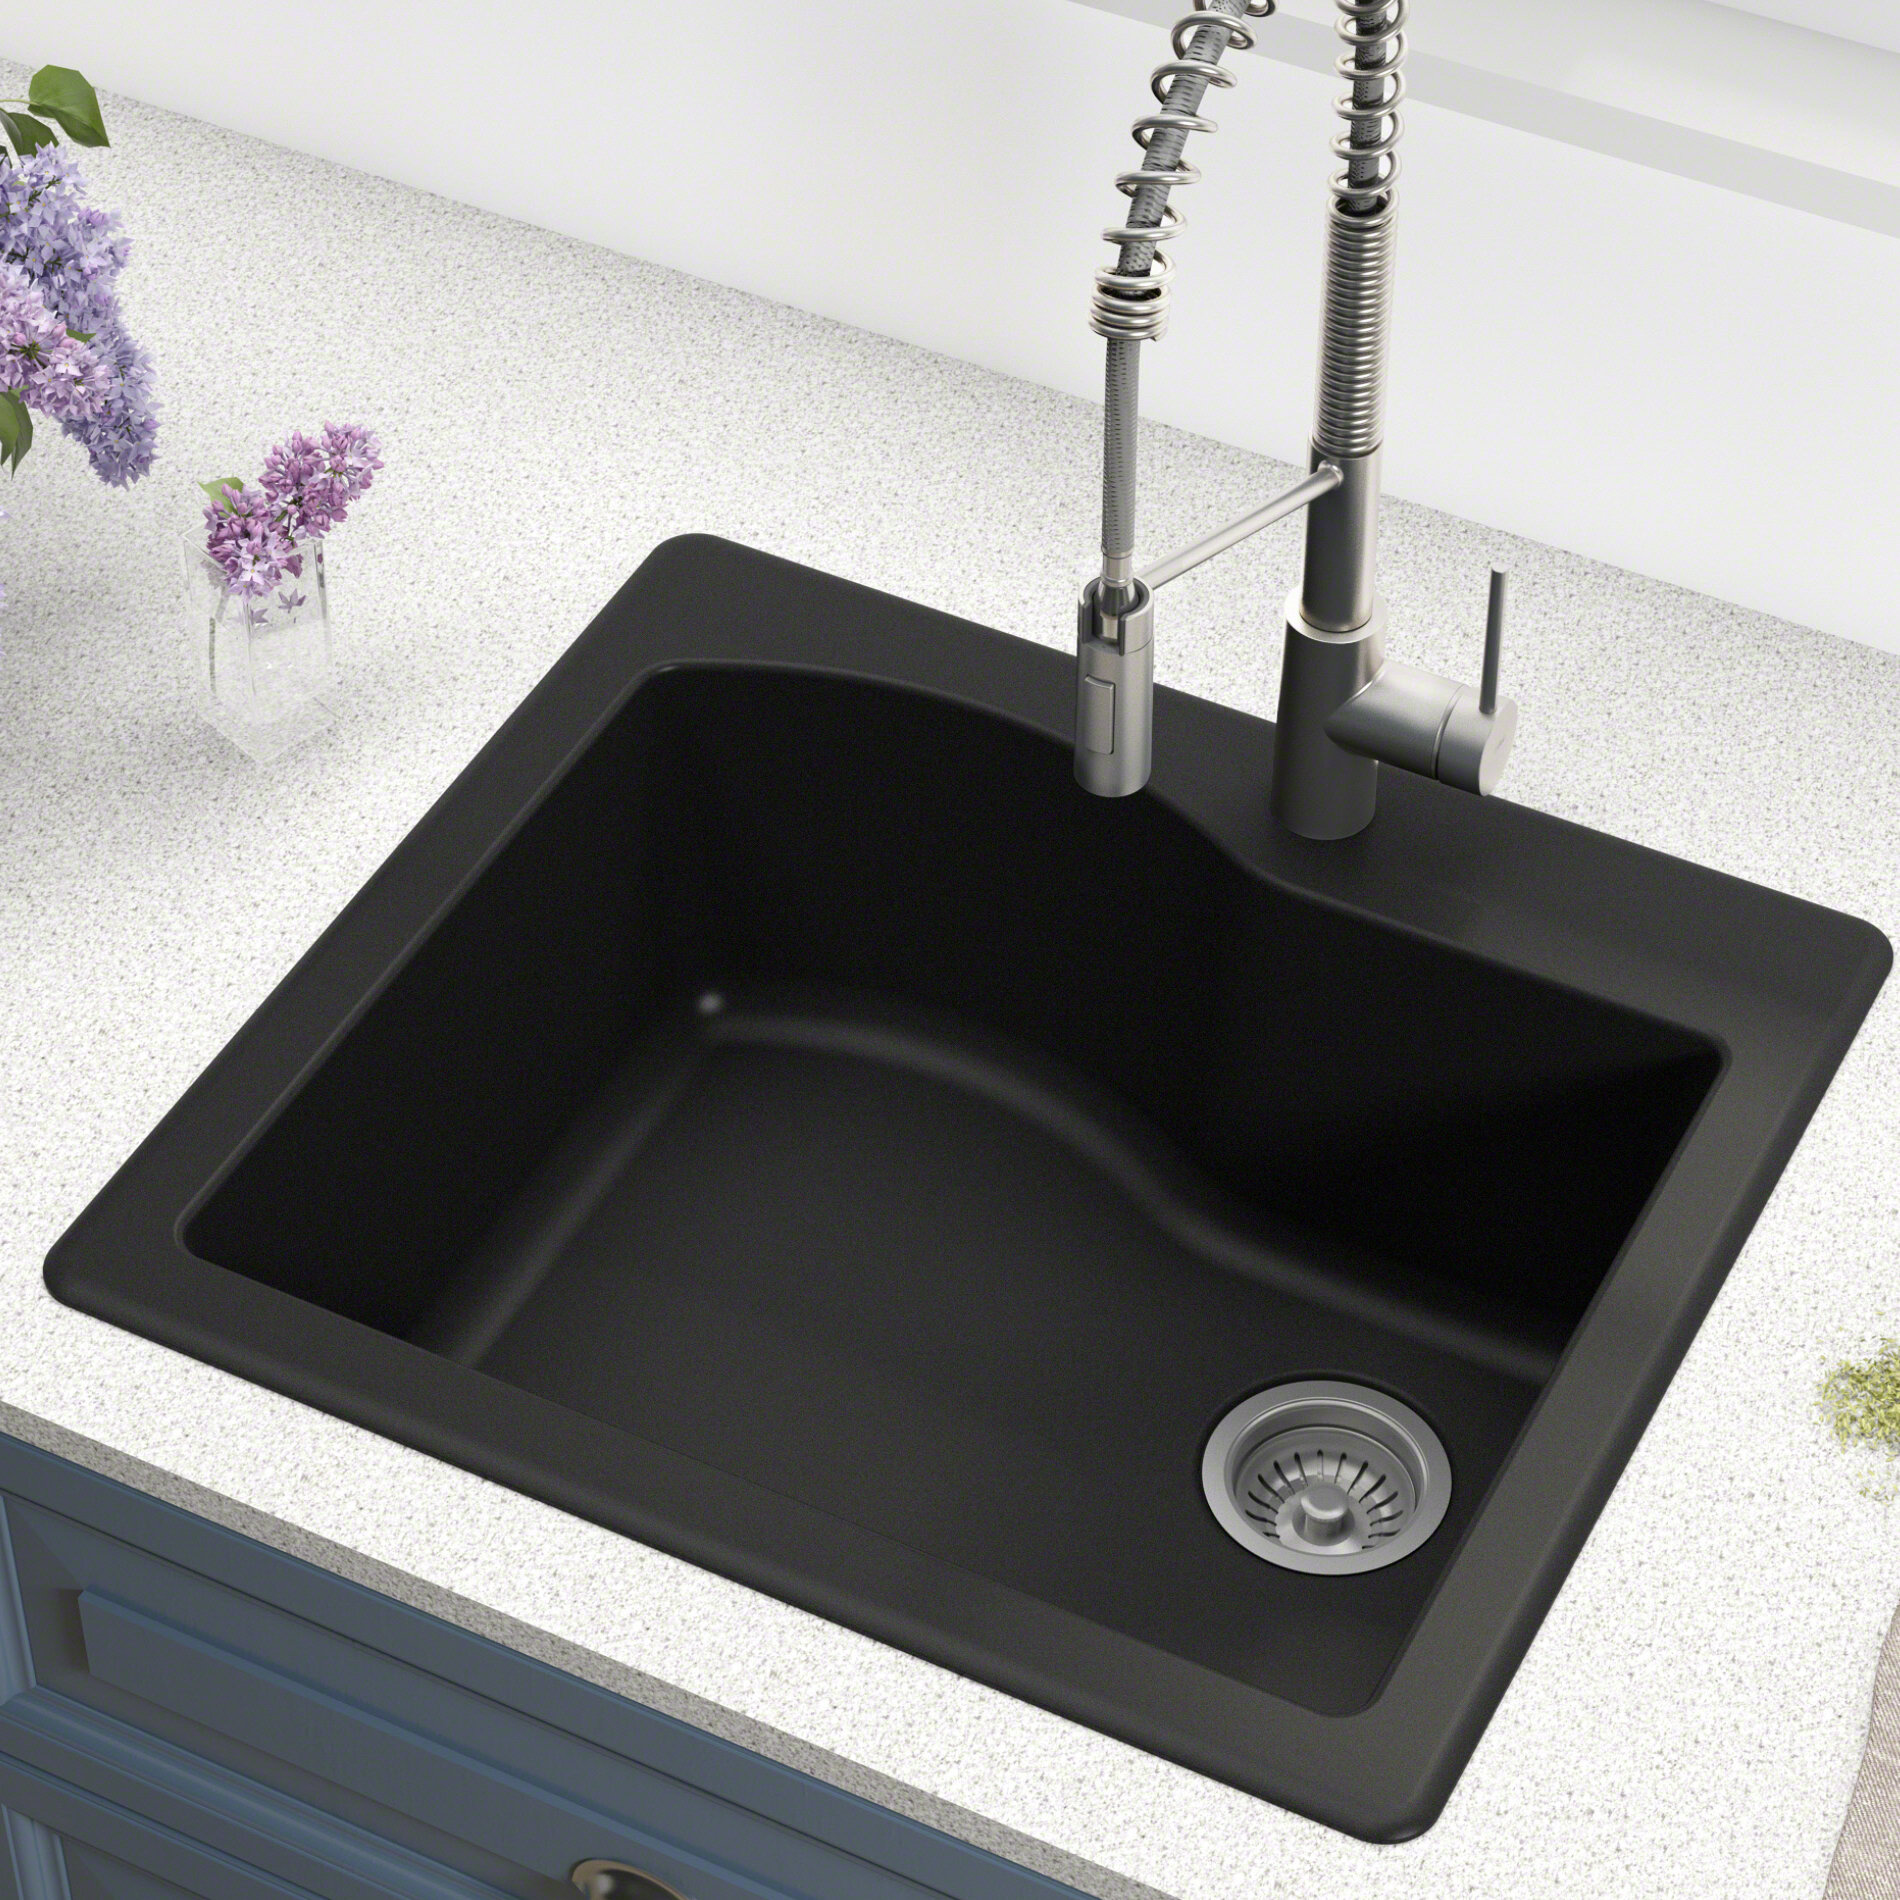 kraus quarza 25 x 22 dual mount kitchen sink reviews wayfair rh wayfair com 25 x 22 cast iron kitchen sink 25 x 22 black kitchen sink